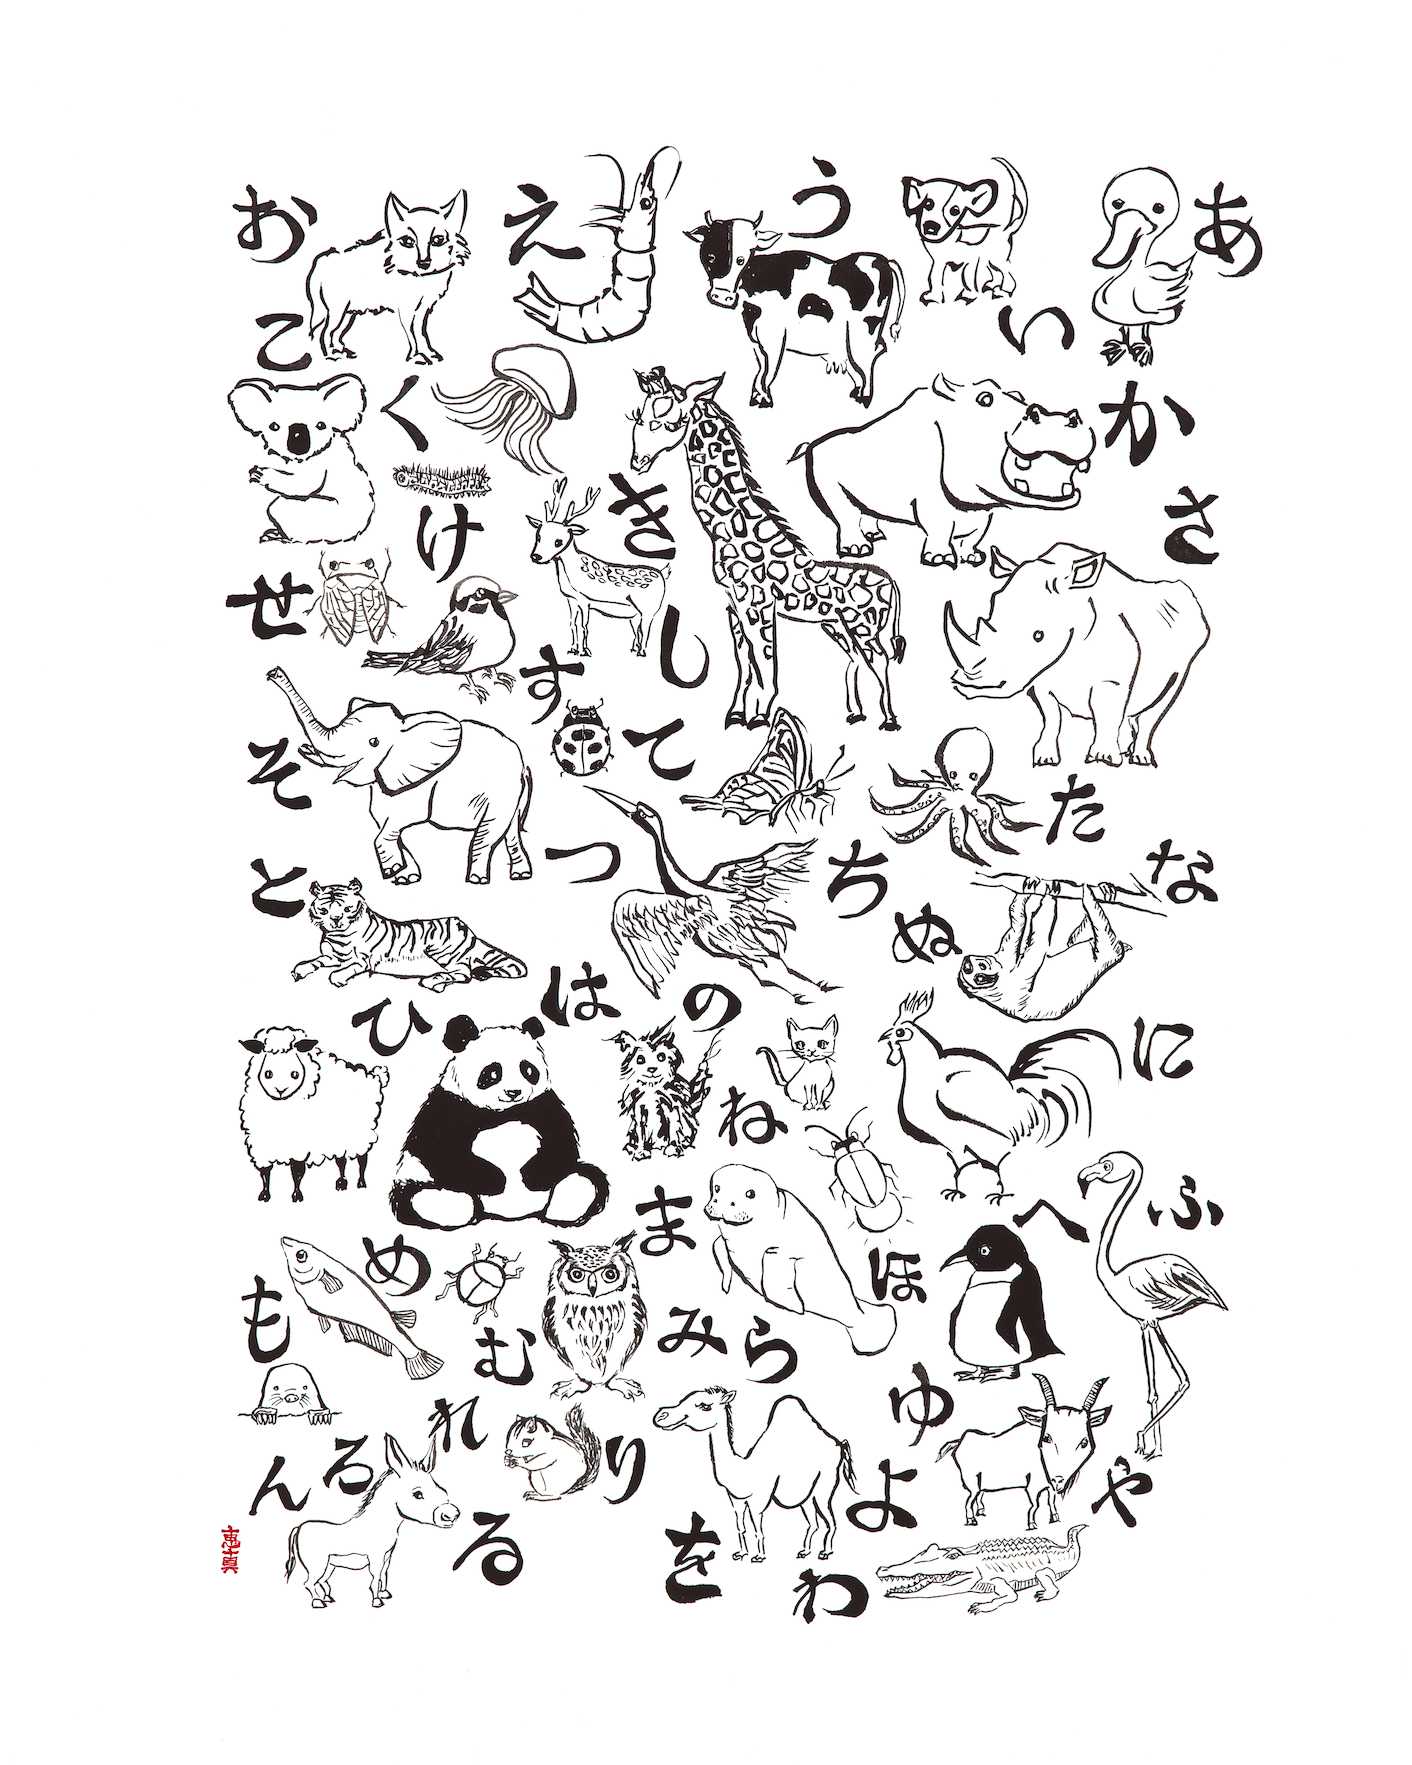 """Hiragana Animals [16x20"""" - $95]  giclee print of an original 16x20"""" Japanese sumi ink painting of animals that correspond with Japanese letters (hiragana)."""